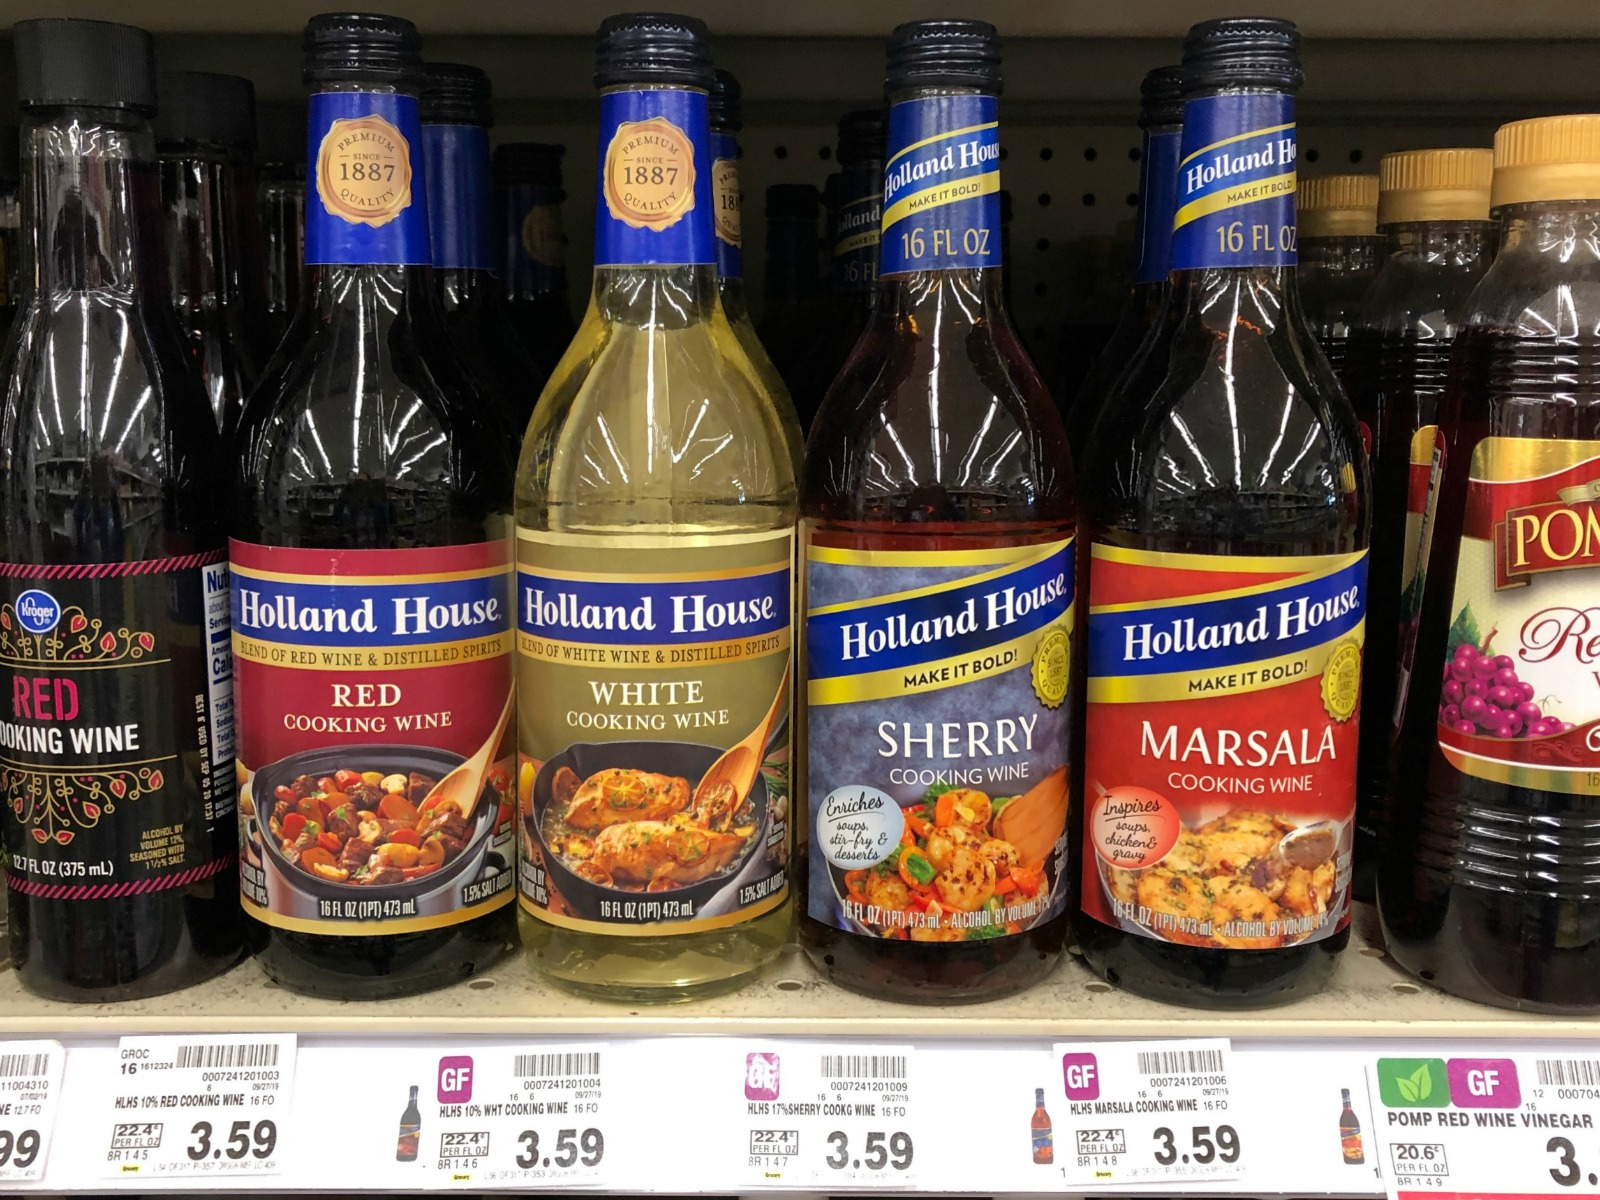 Easy Weeknight Chicken Piccata - Save On Holland House Cooking Wine At Kroger! 3